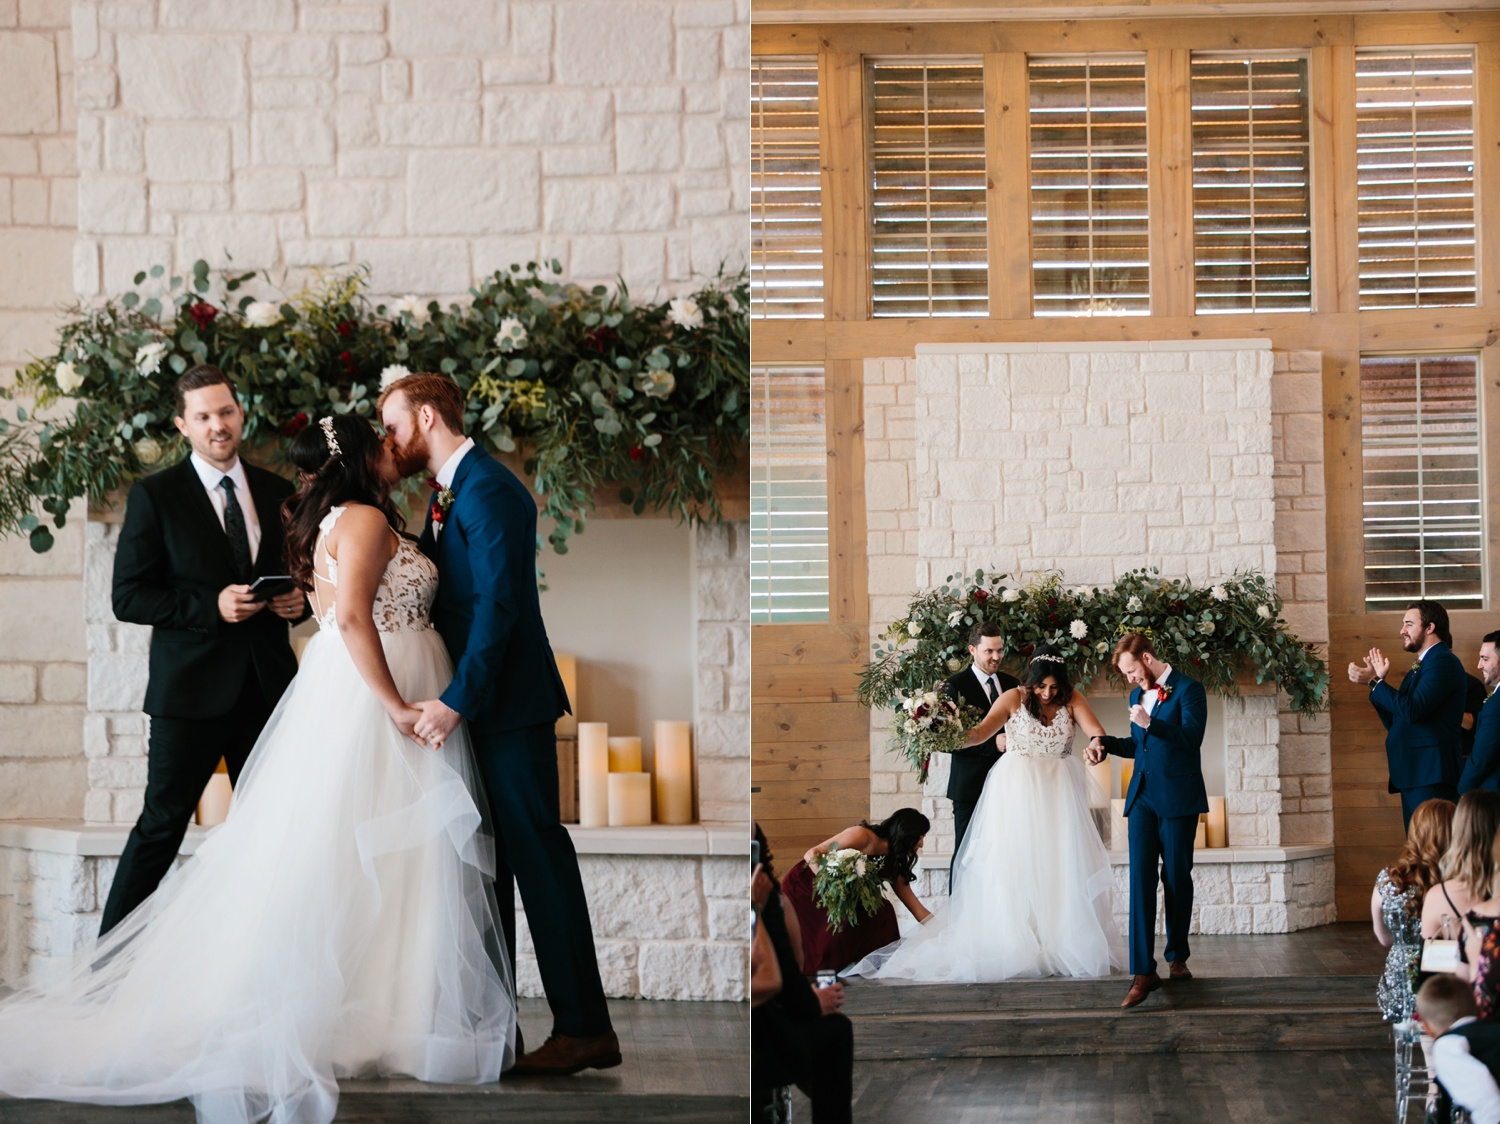 Grant + Lysette | a vibrant, deep burgundy and navy, and mixed metals wedding at Hidden Pines Chapel by North Texas Wedding Photographer Rachel Meagan Photography 108